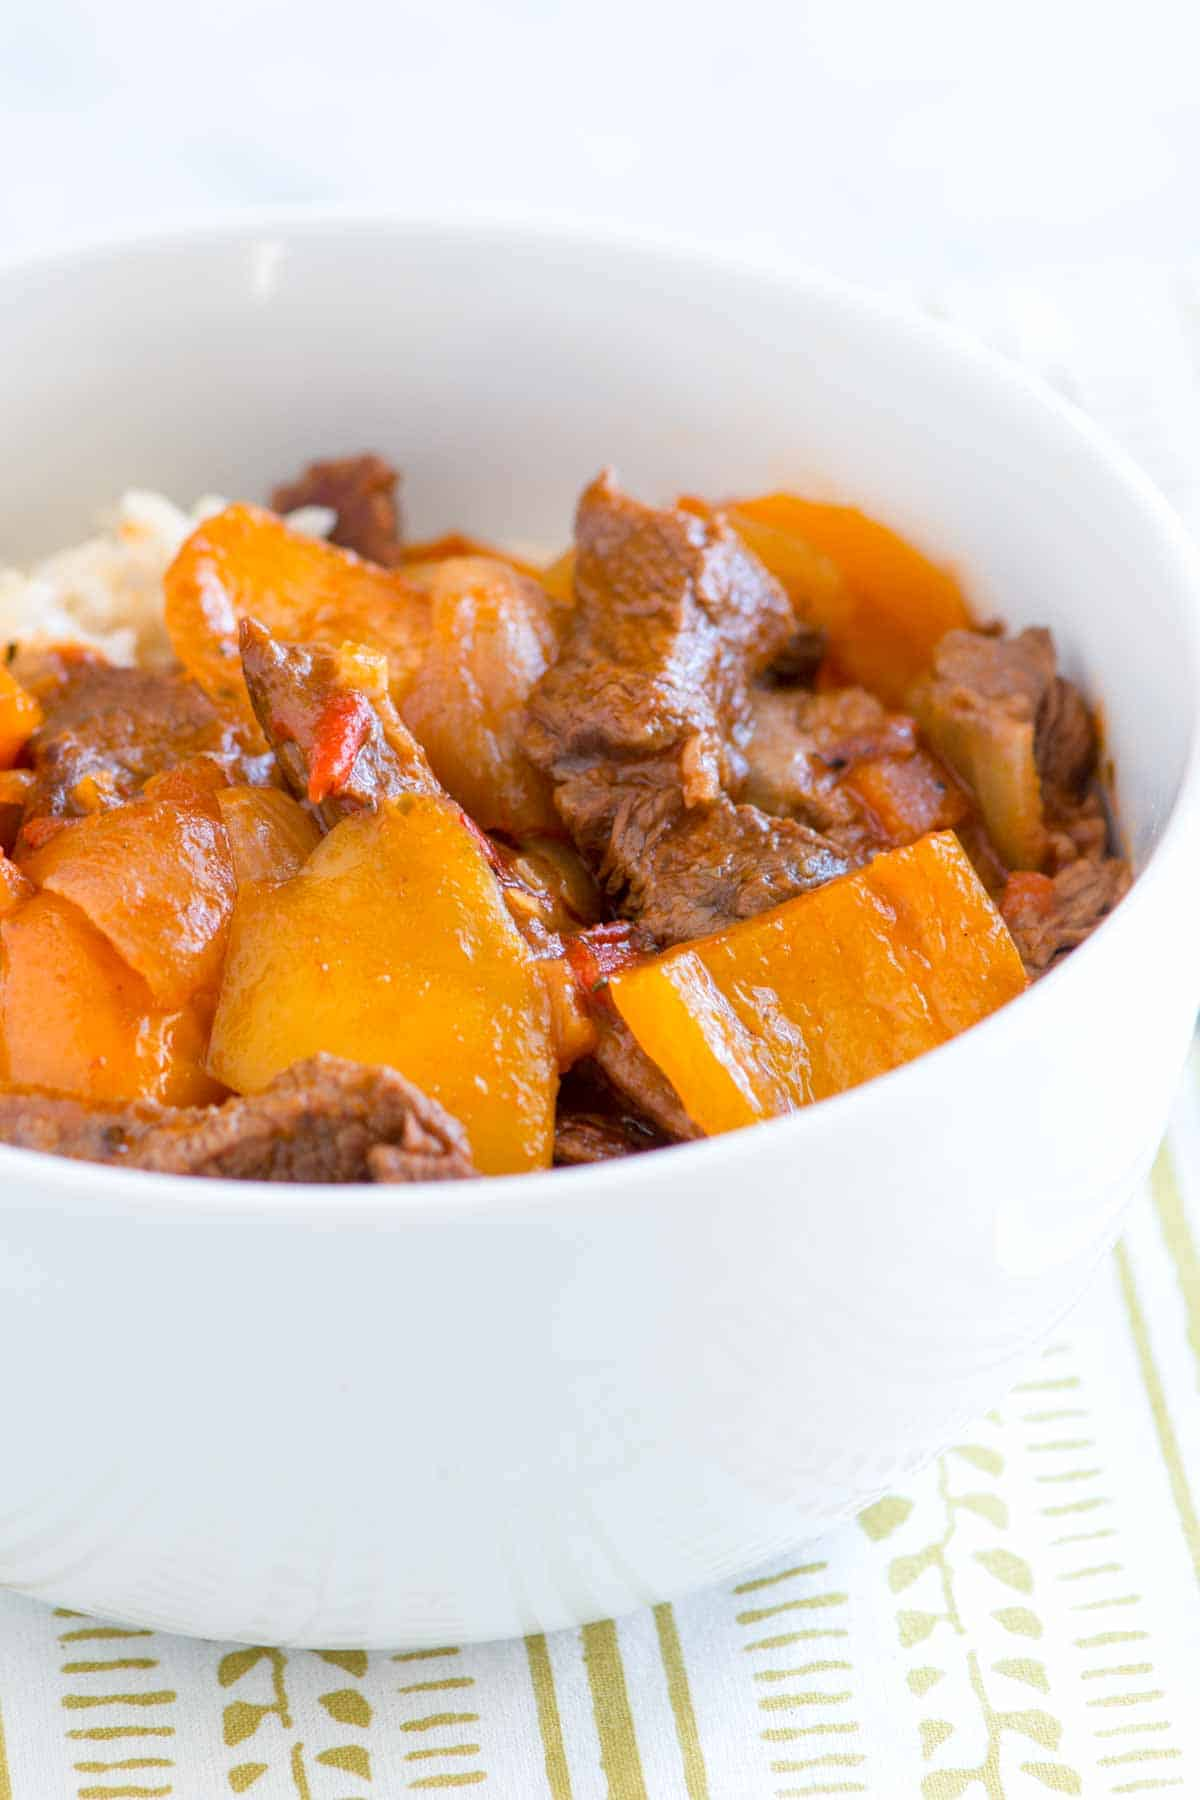 How to Make Pepper Steak in a Slow Cooker